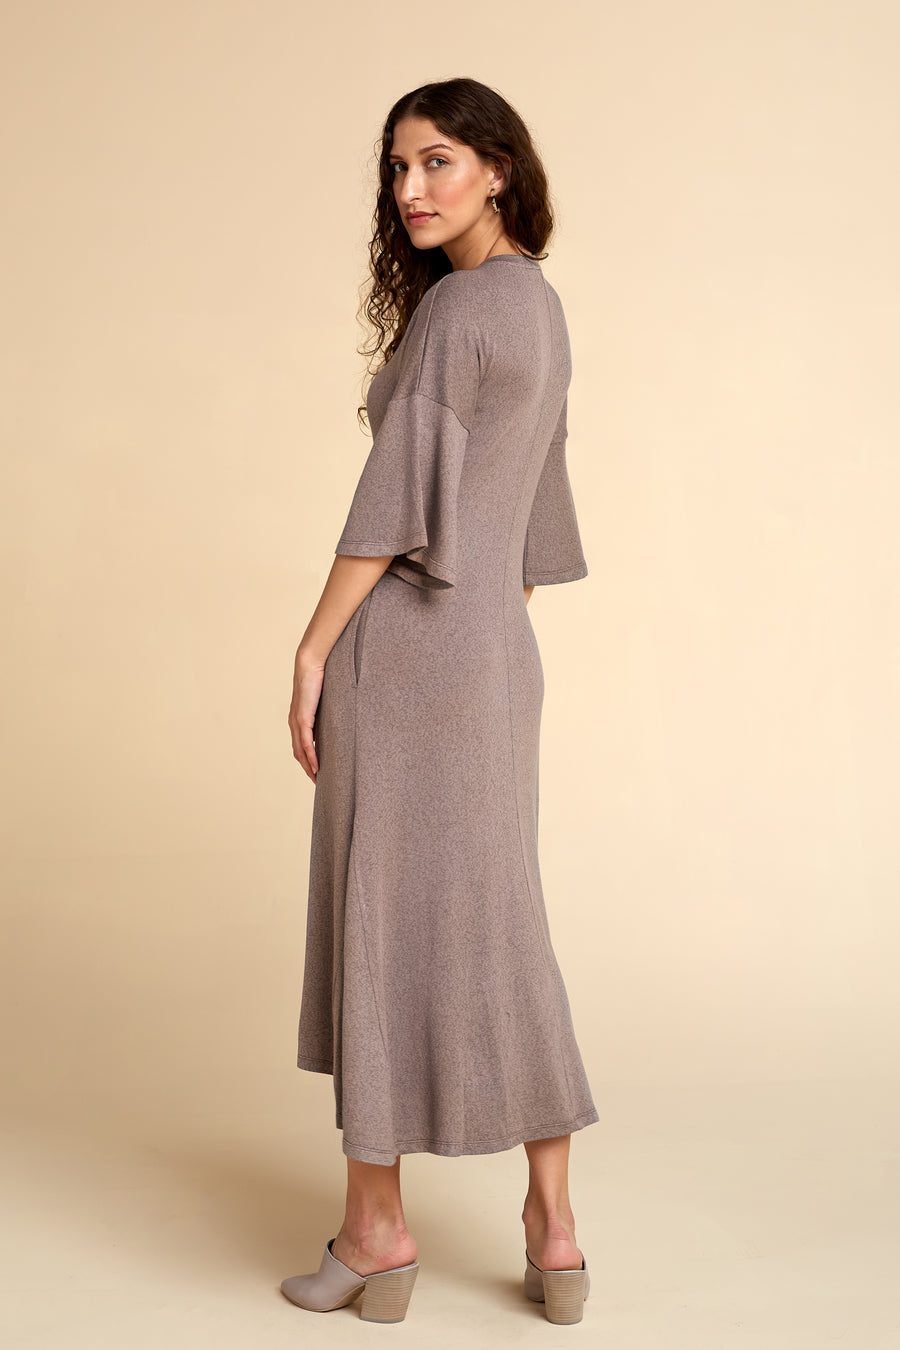 Model wearing Akala Clothing's sustainable Sweater Dress in Mink color, size Extra Small